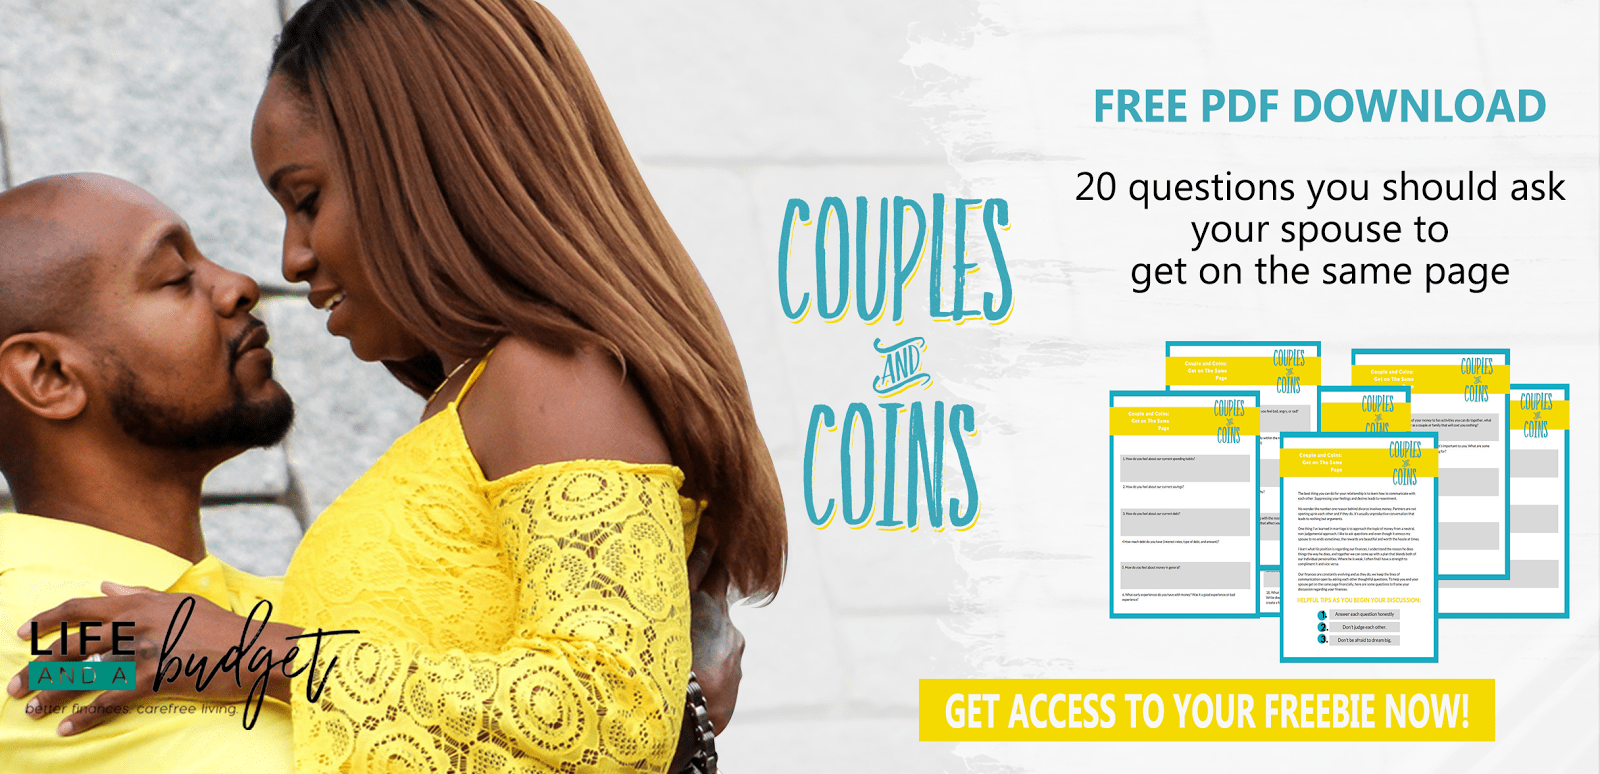 couples and coins opt in image 1